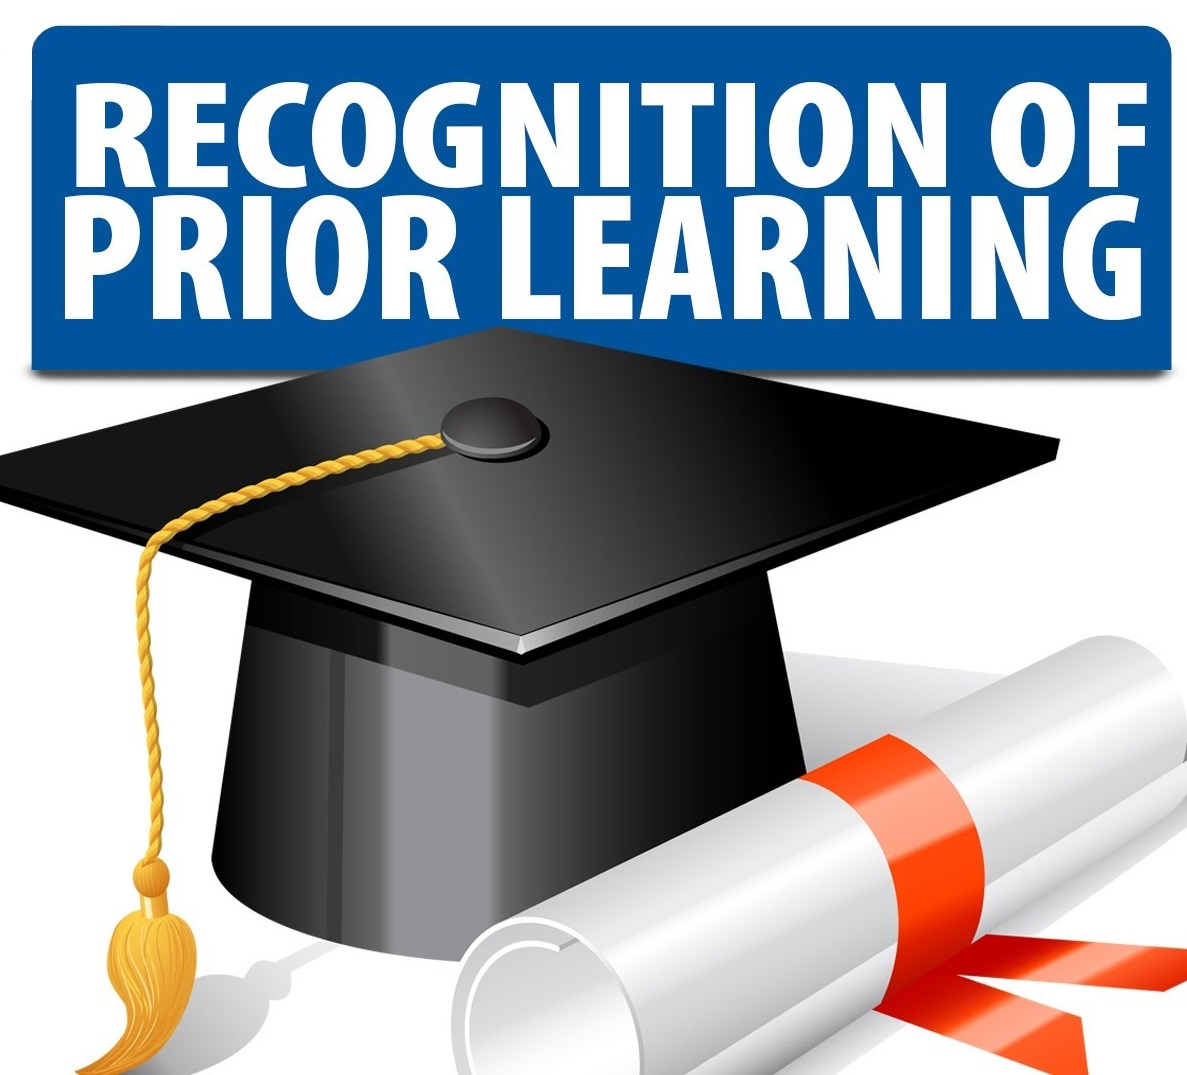 rpl learning Recognition of prior learning (rpl) rpl is a form of assessment which is the process of recognising a person's skills and knowledge which they have acquired through previous training, education, work and/or general life experience.